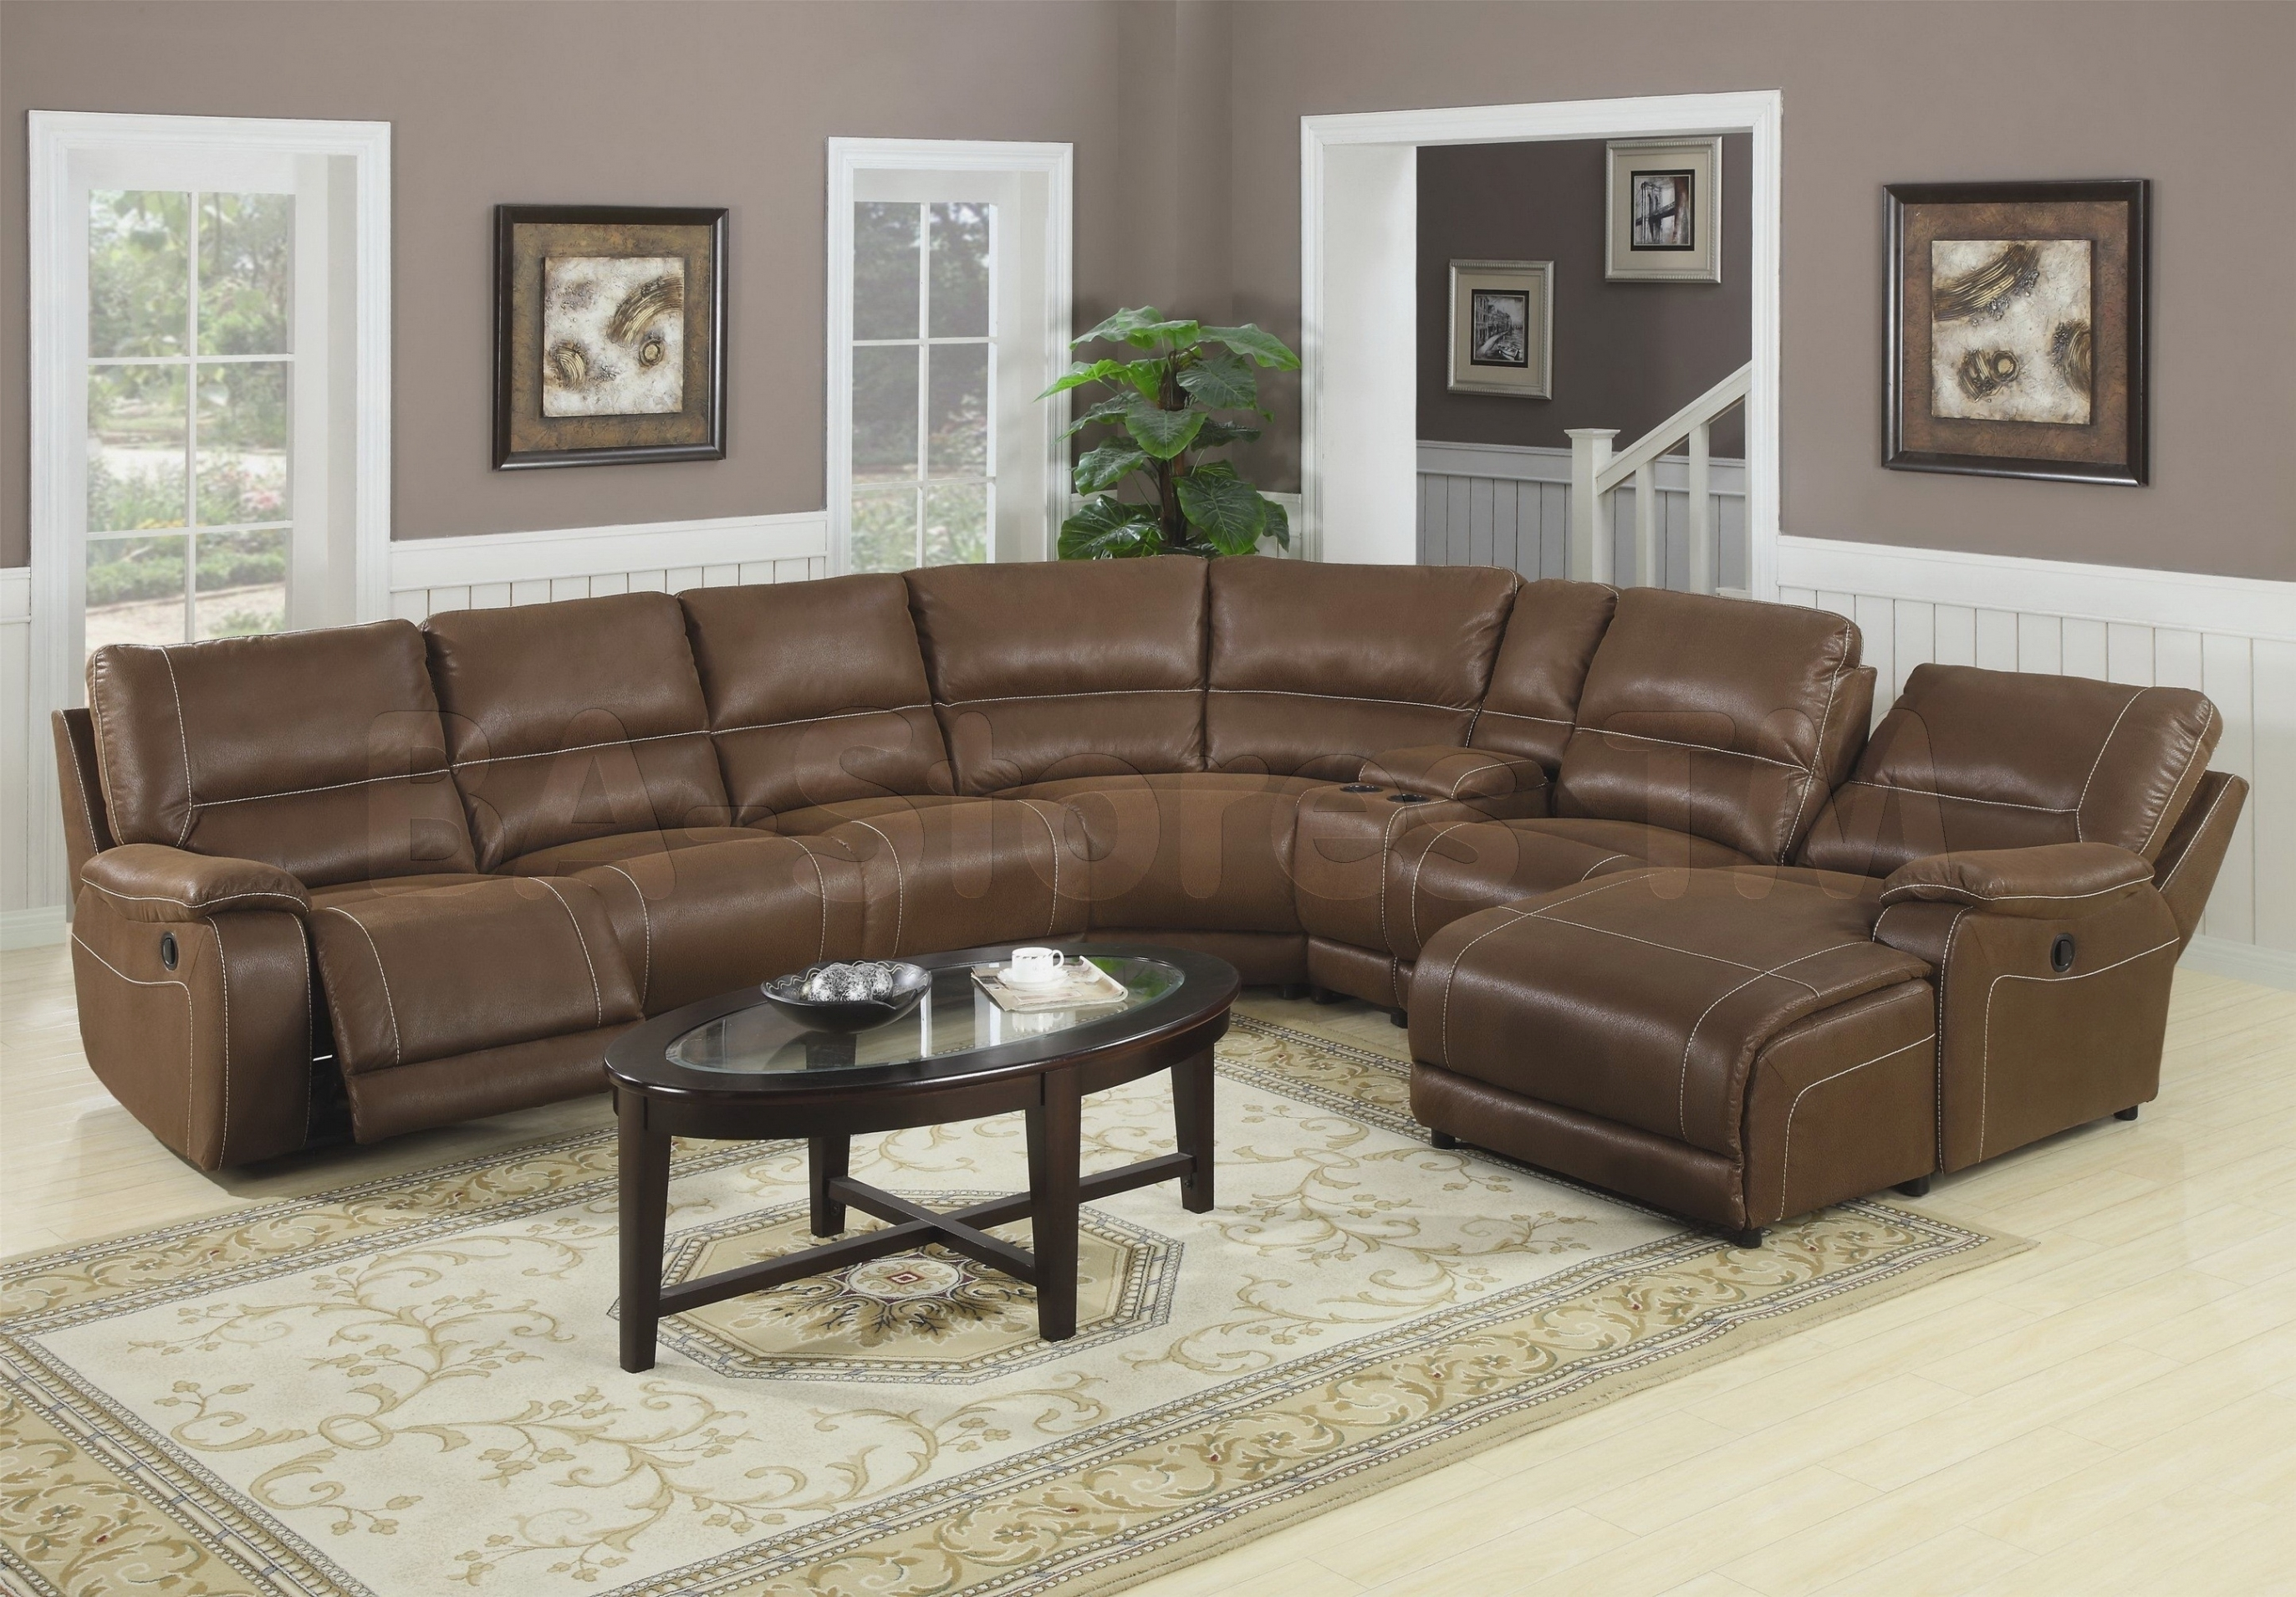 Best Of Sectional Sofas At The Brick – Sectional Sofas In Sectional Sofas At The Brick (Image 1 of 10)